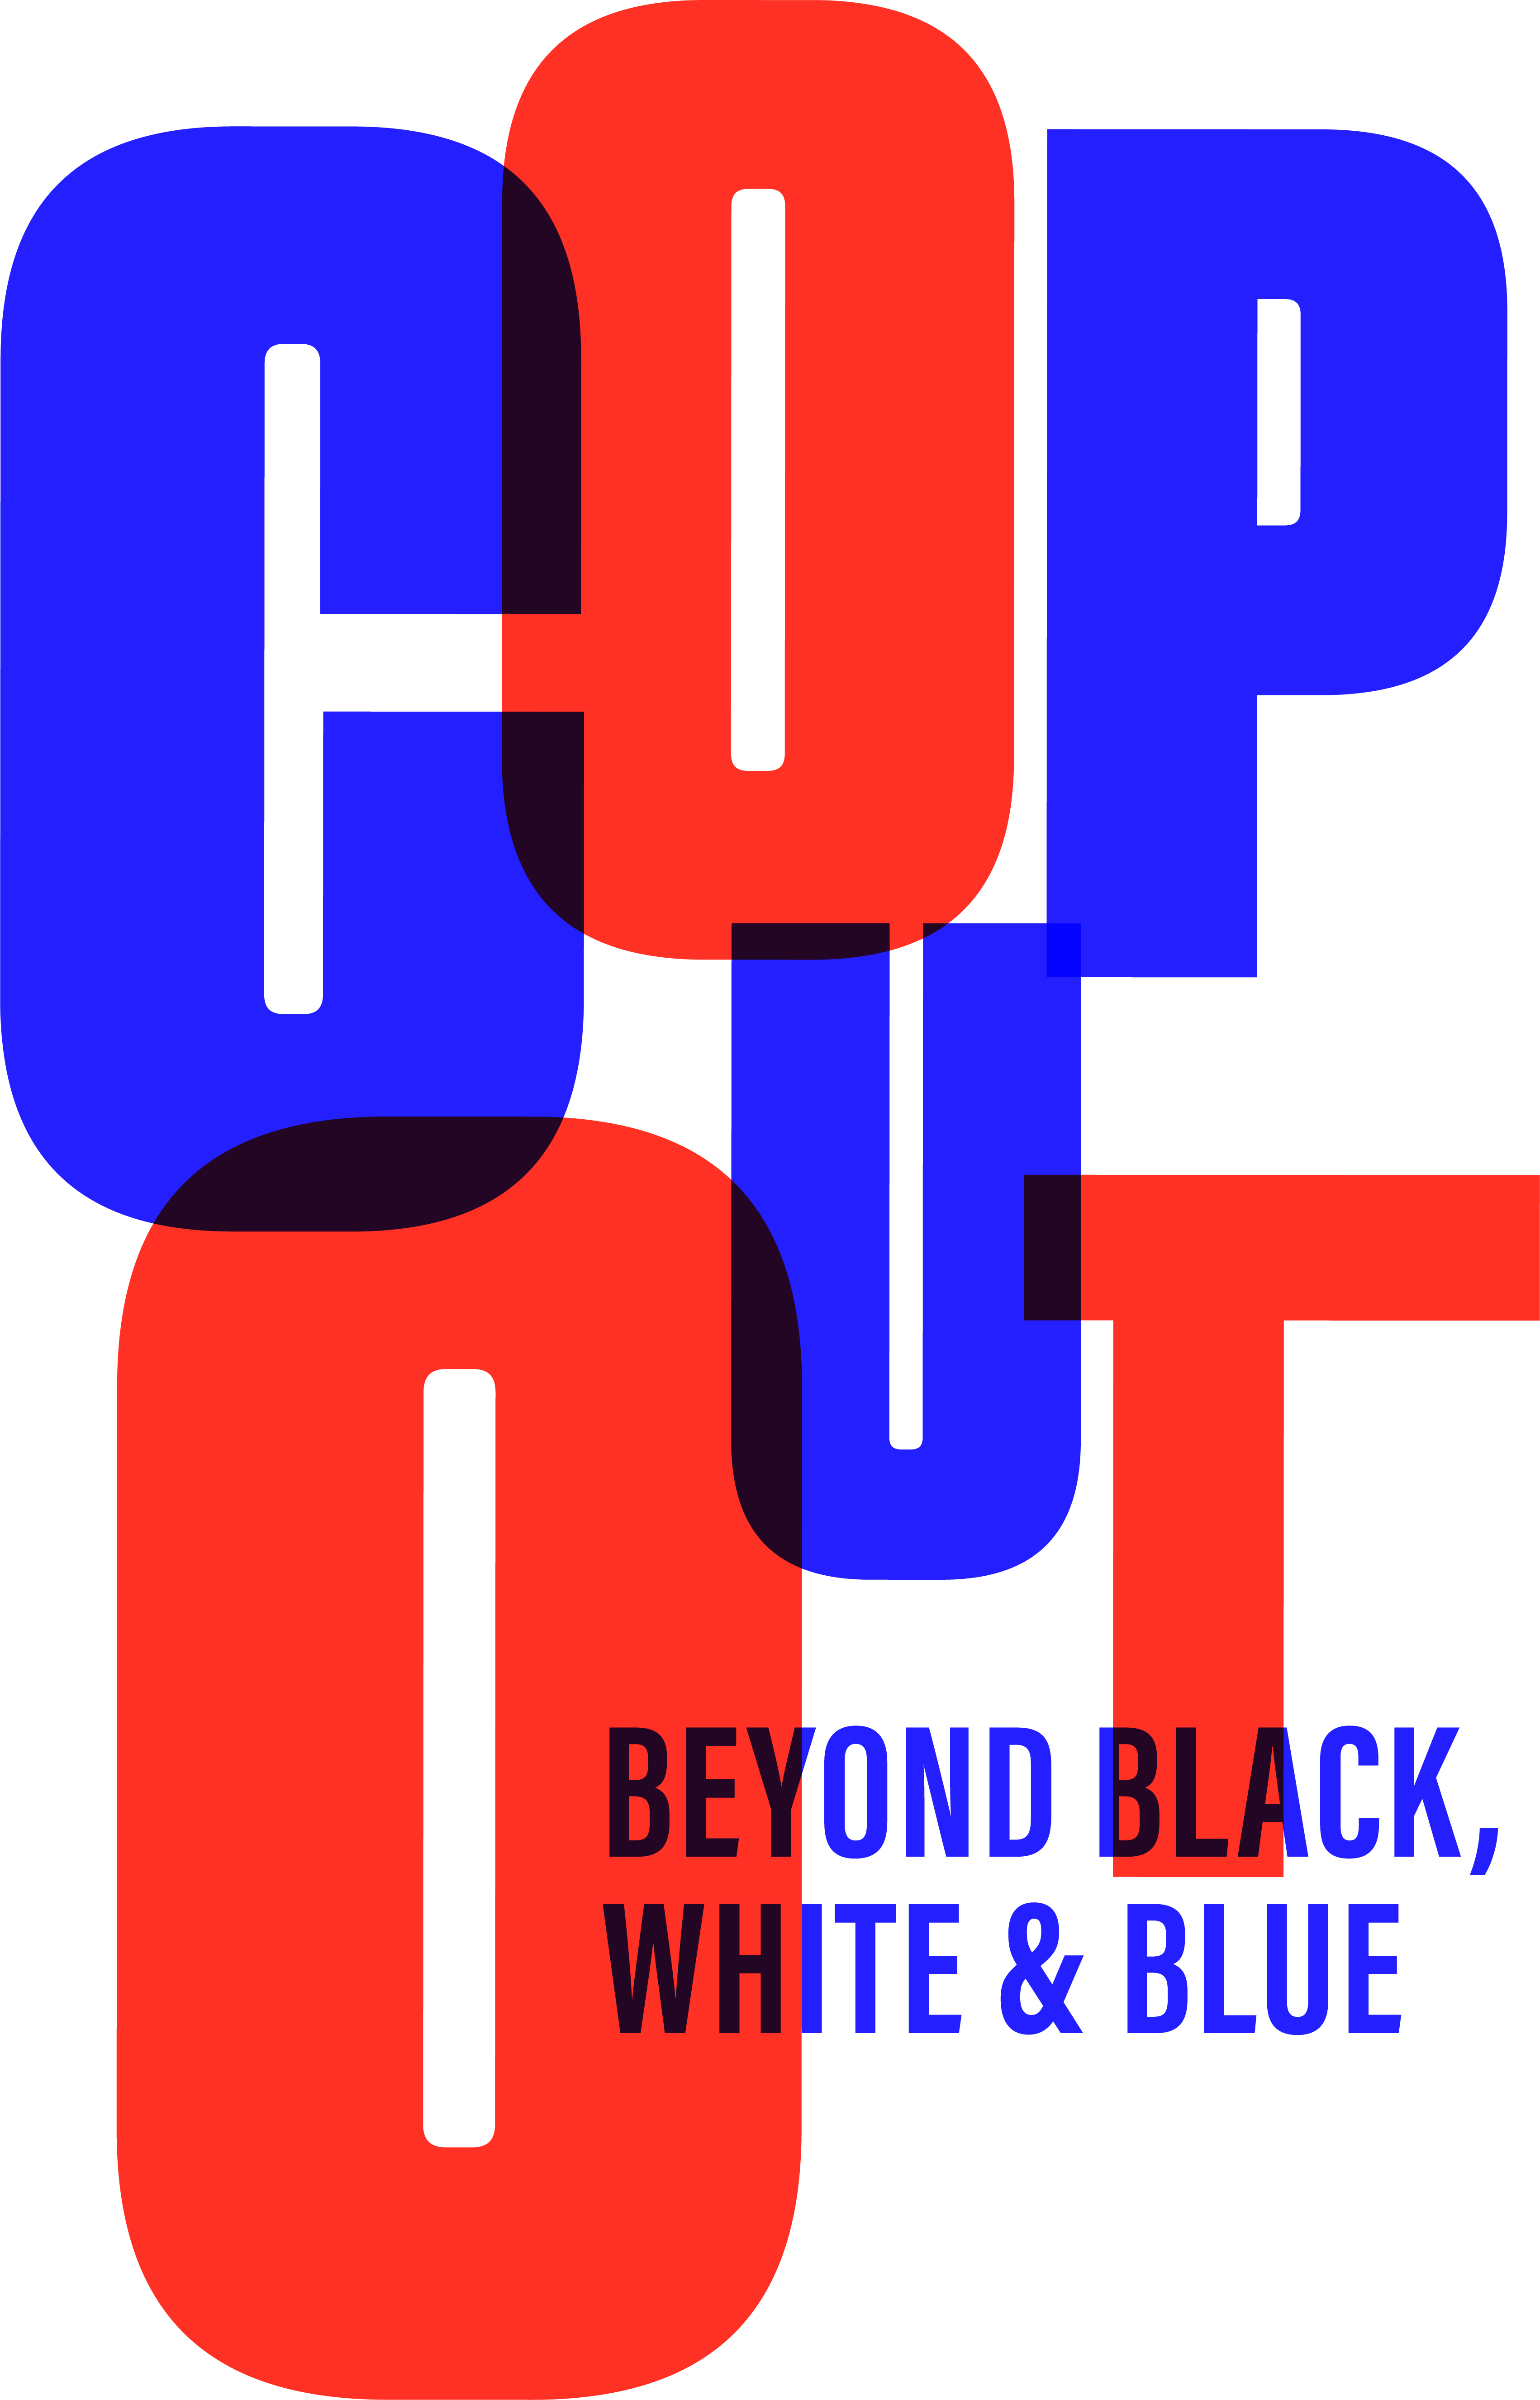 Cop Out Beyond Black White Blue Red Door Project